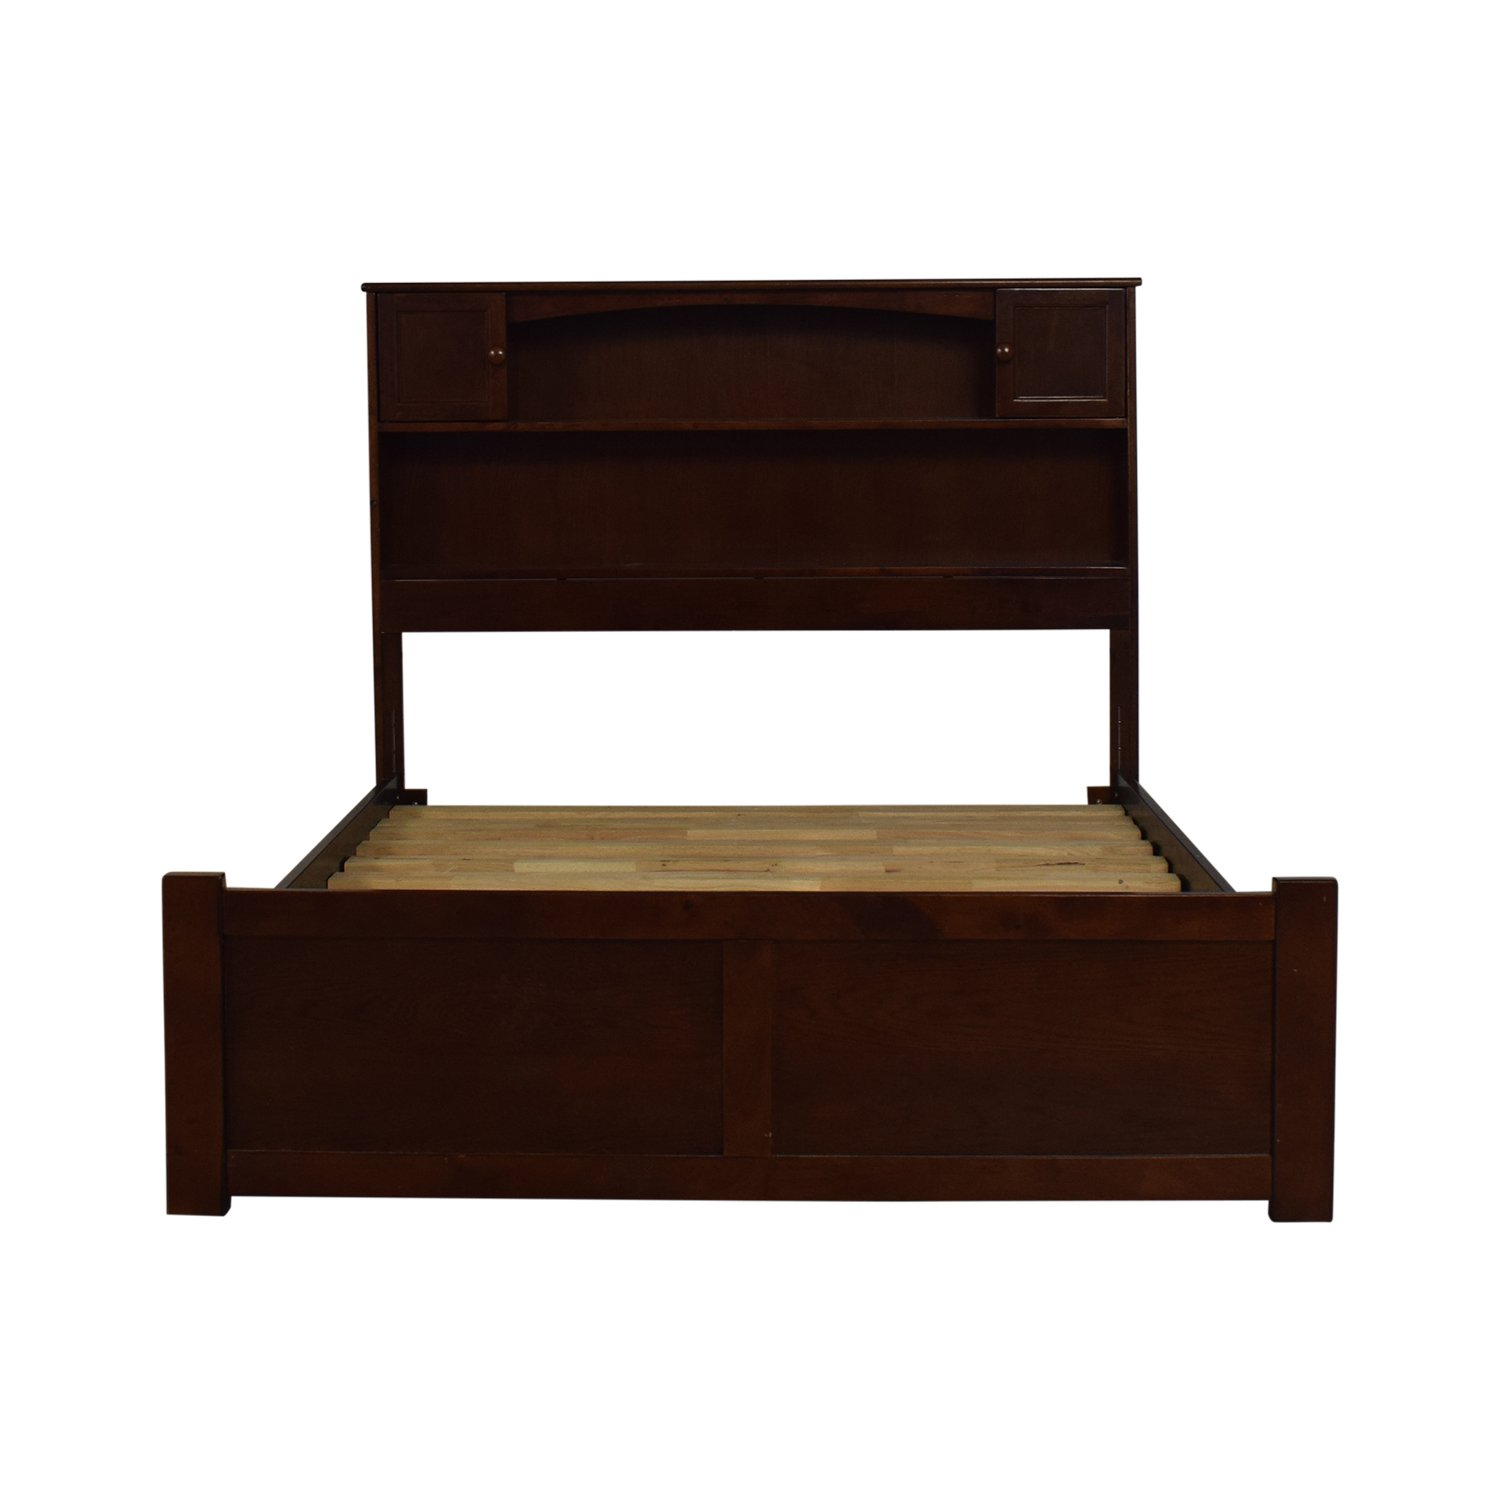 Viv + Rae Viv + Rae Edwin Platform Full Bed for sale